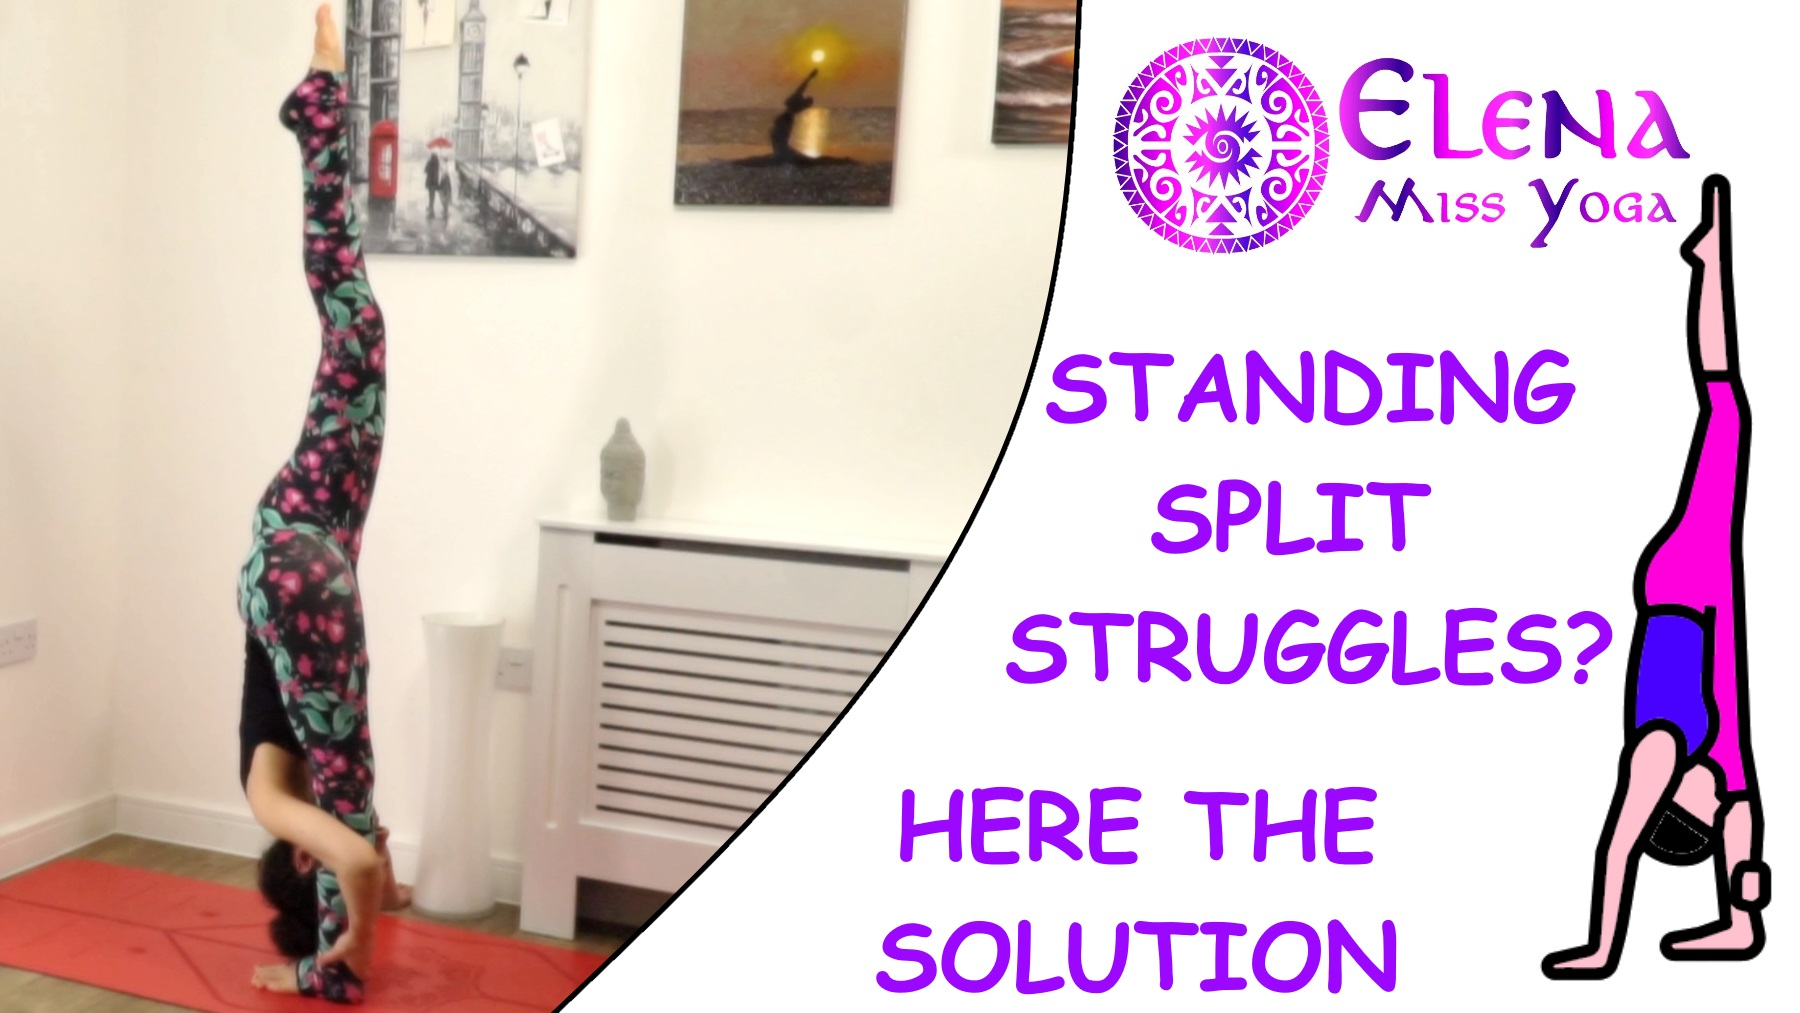 STANDING SPLIT STRUGGLES? HERE THE SOLUTION FOR YOU